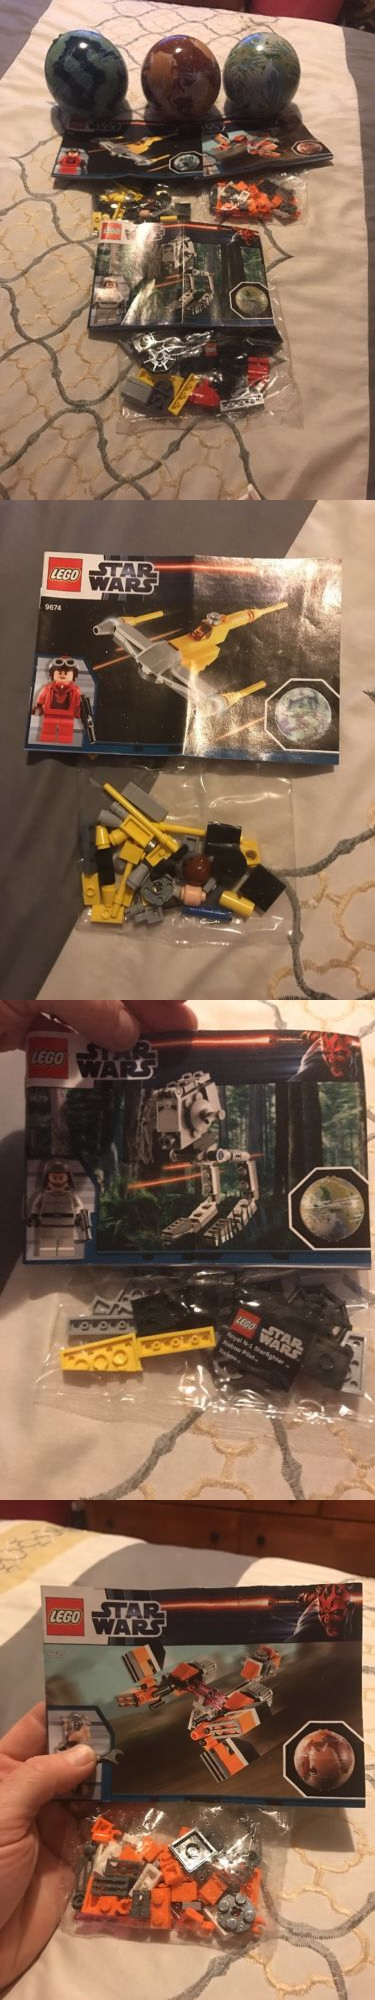 Instruction Manuals 183449 Lego Star Wars 9679 Buy It Now Only